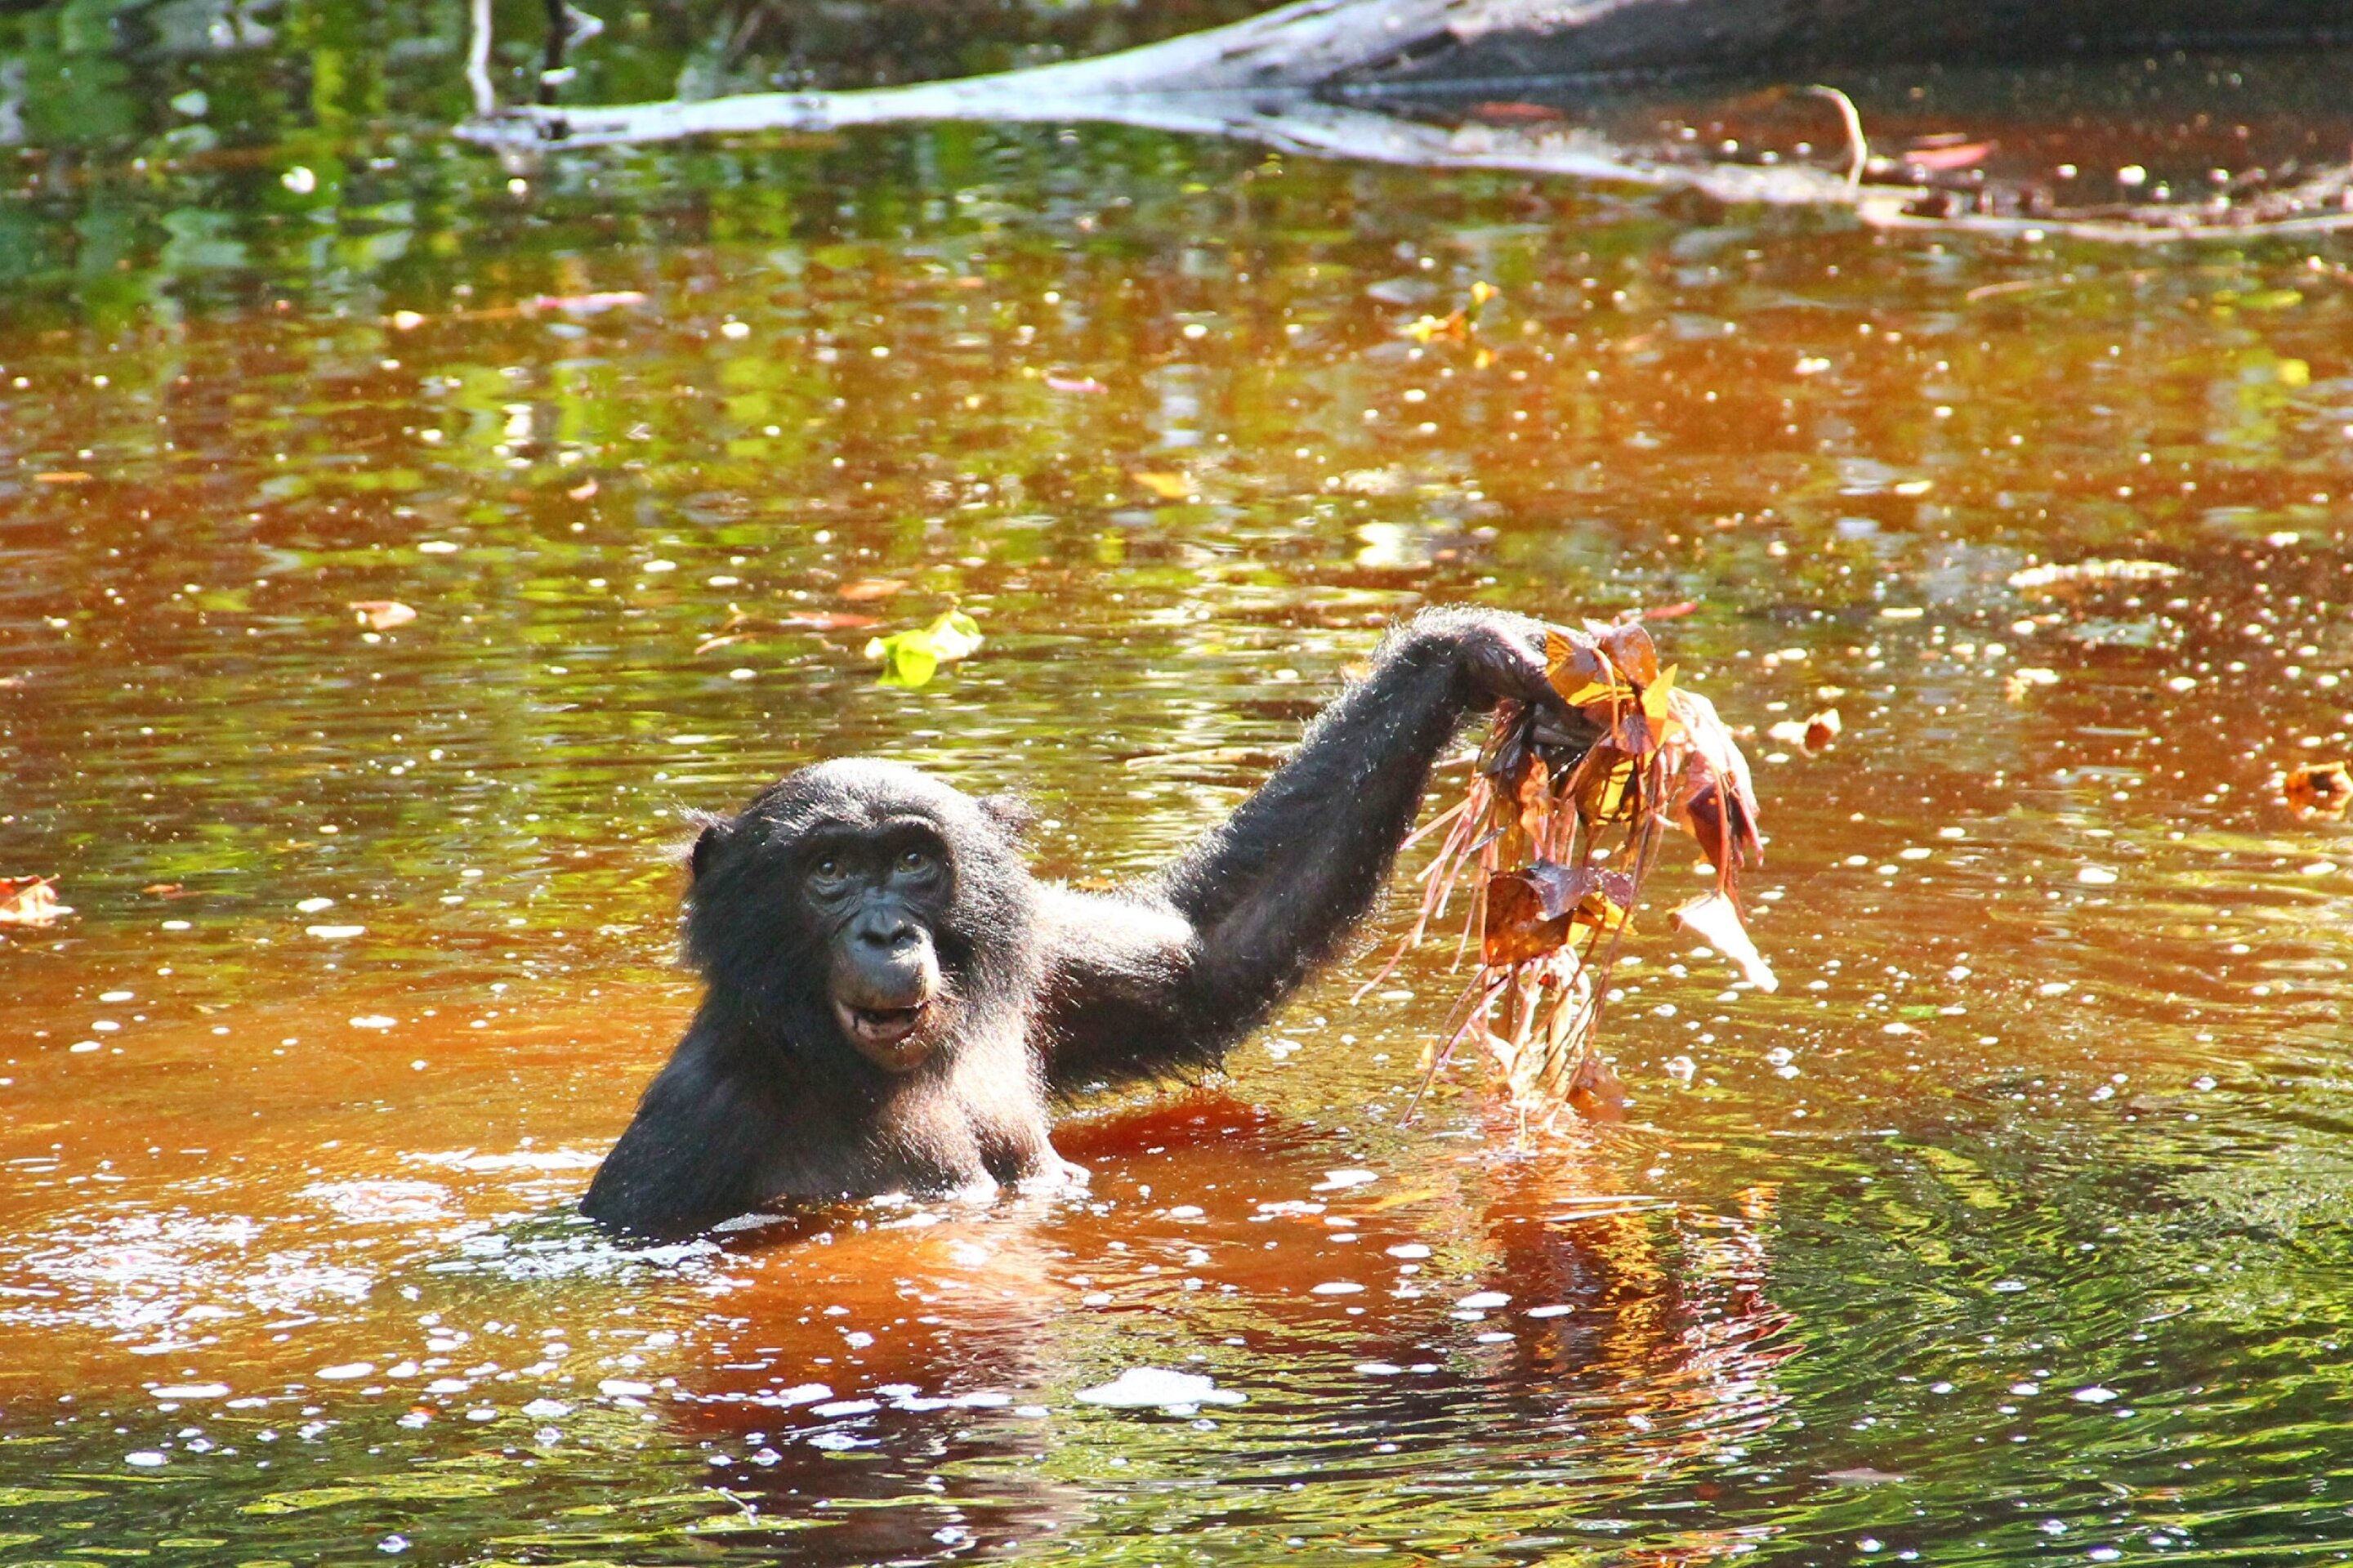 Bonobo diet of water greens might hold clues to human evolution - Phys.org thumbnail